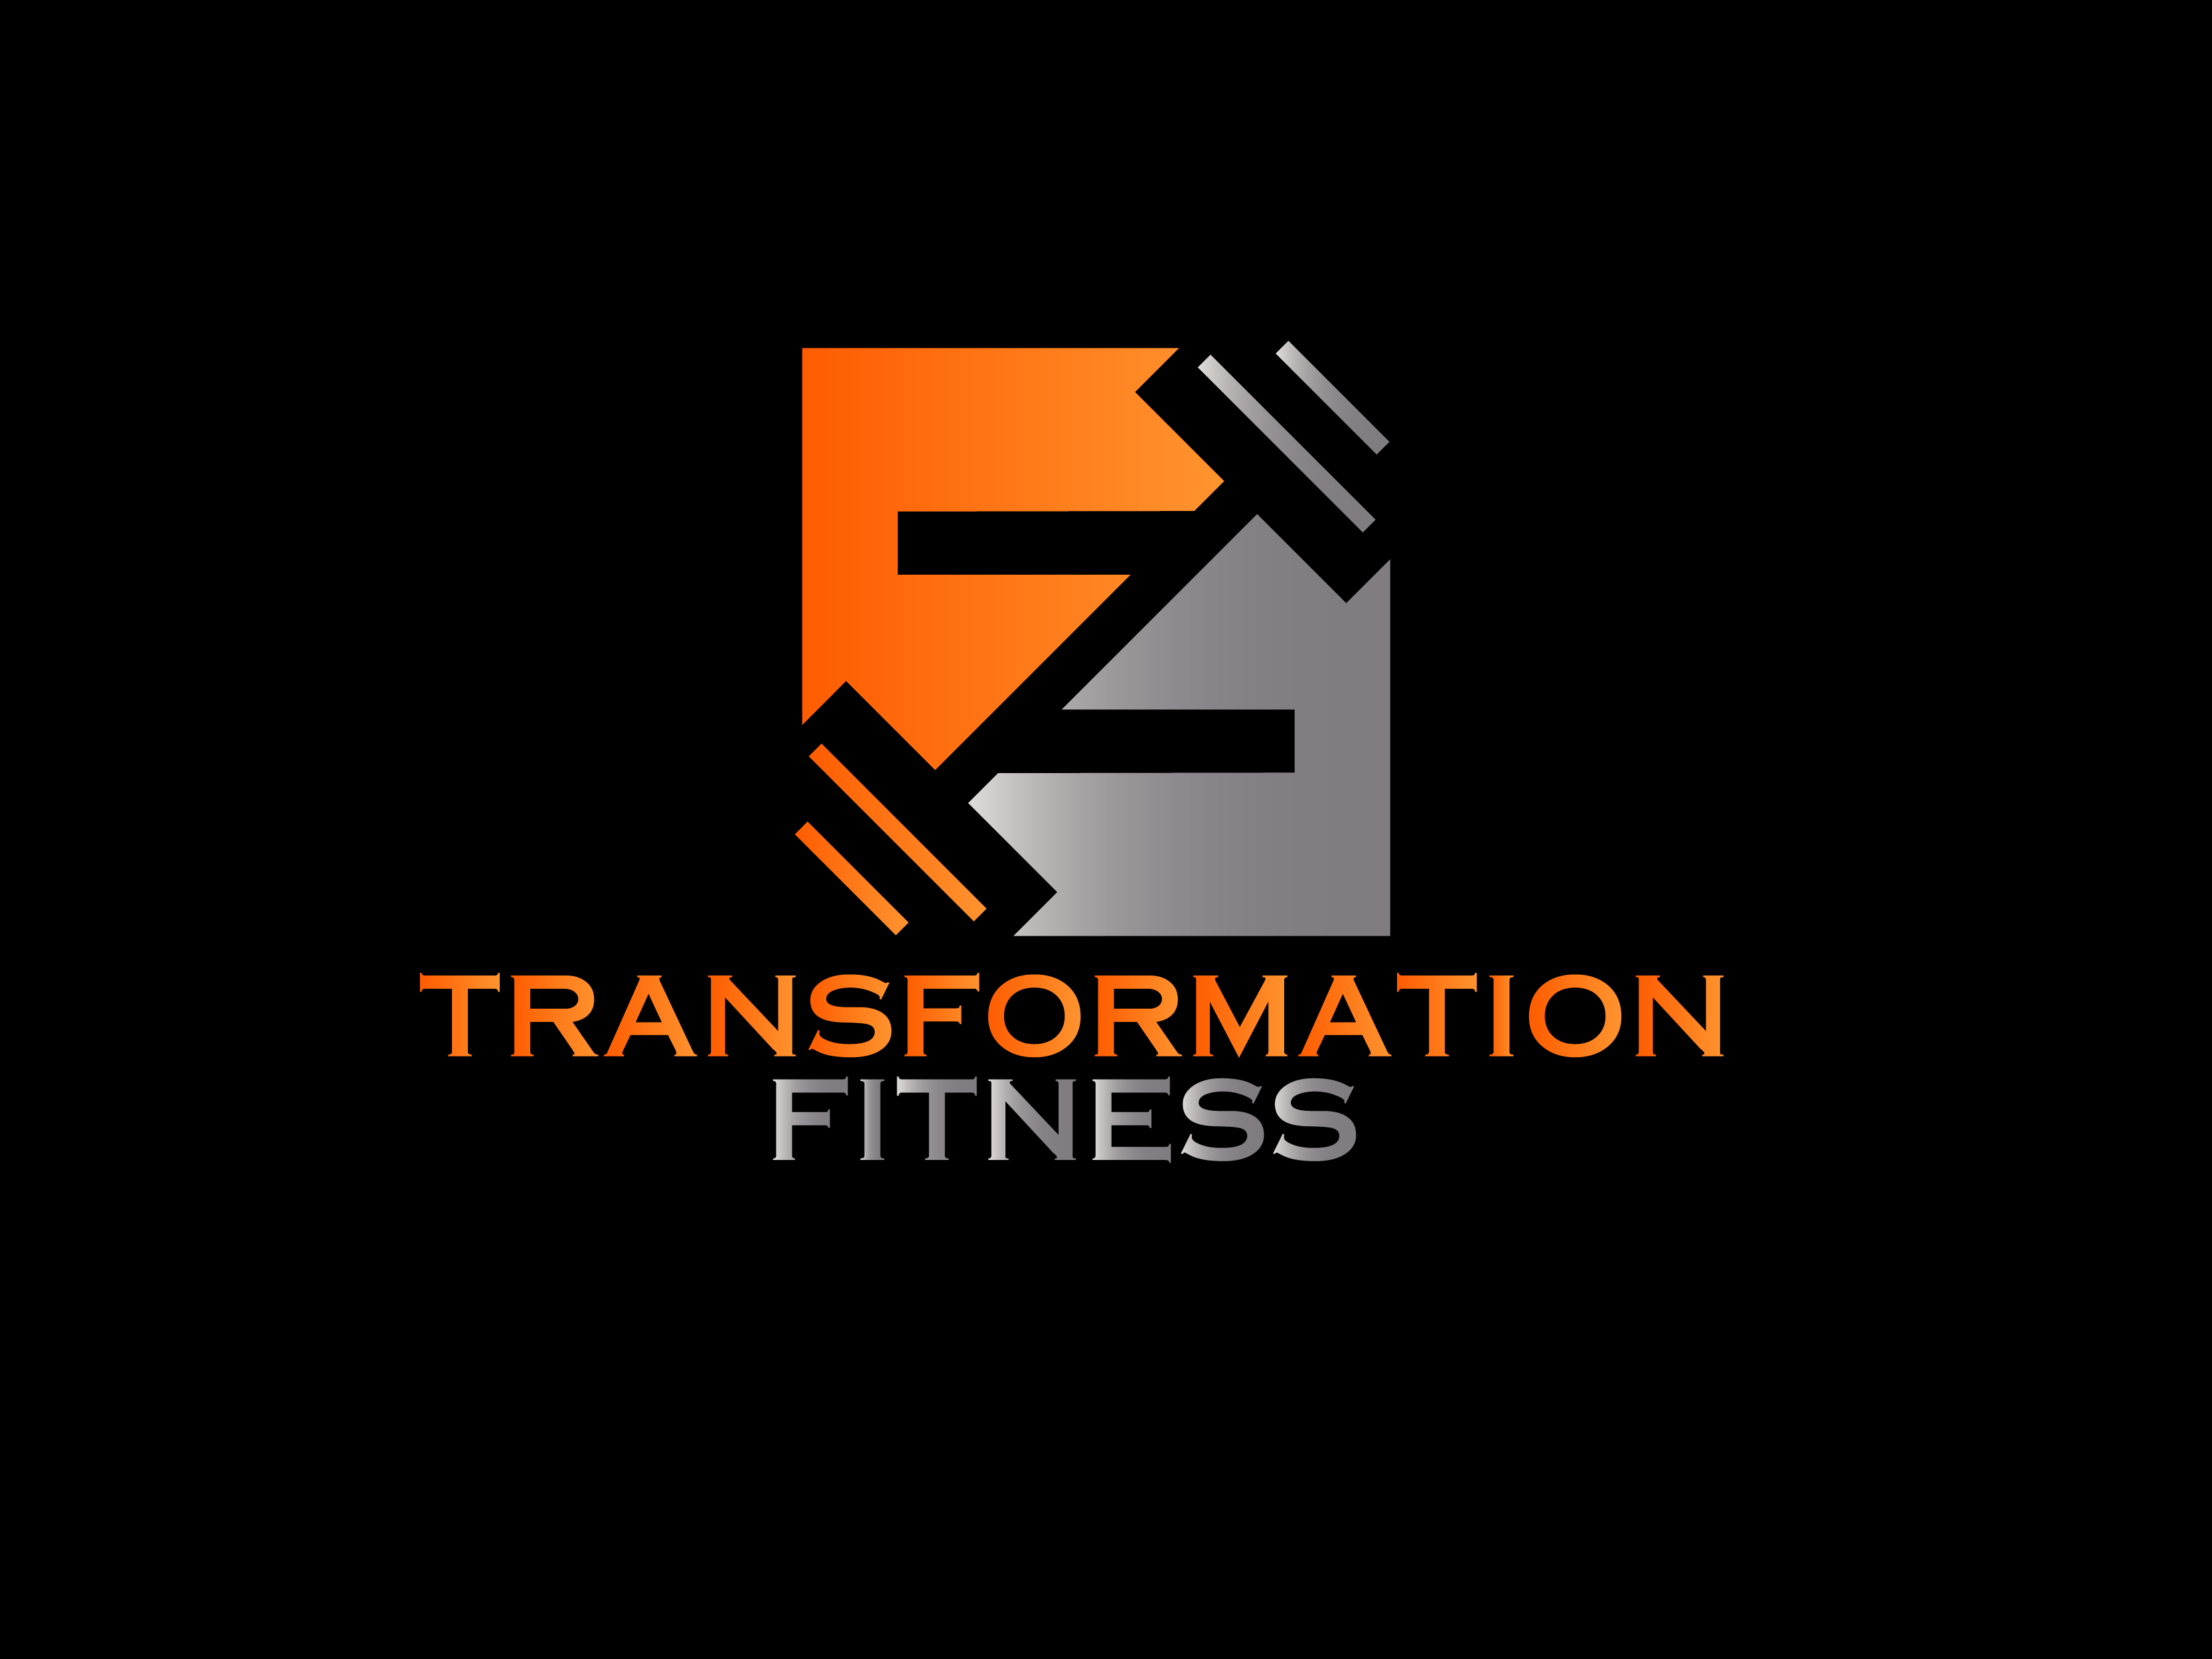 Logo Design by brands_in - Entry No. 110 in the Logo Design Contest Inspiring Logo Design for Transformation fitness.